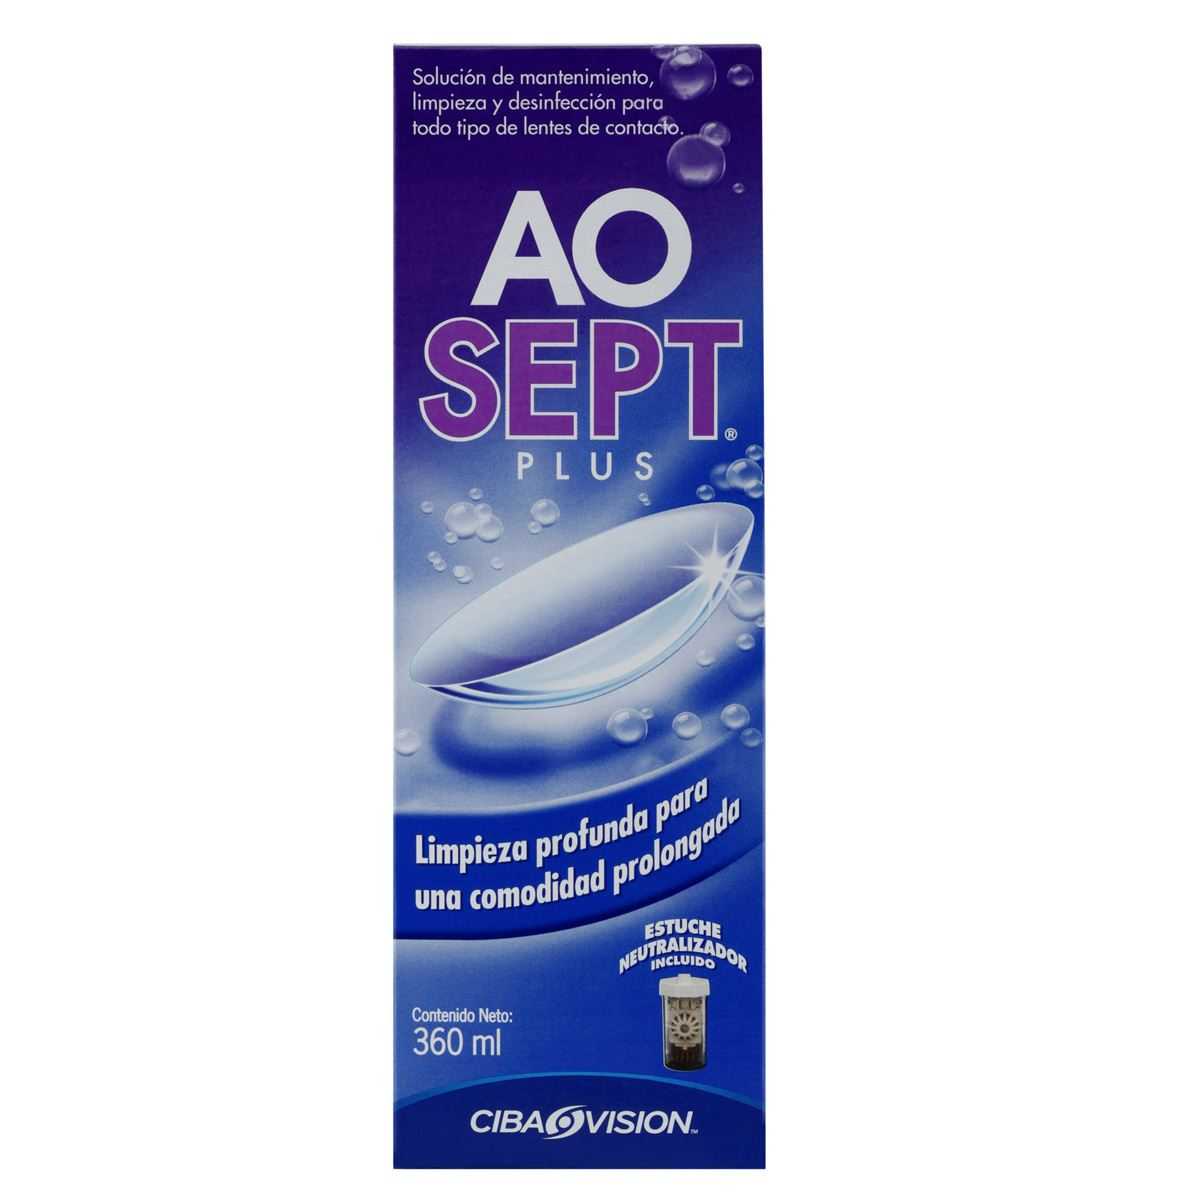 Solución aosept plus 360 ml  - Sanborns